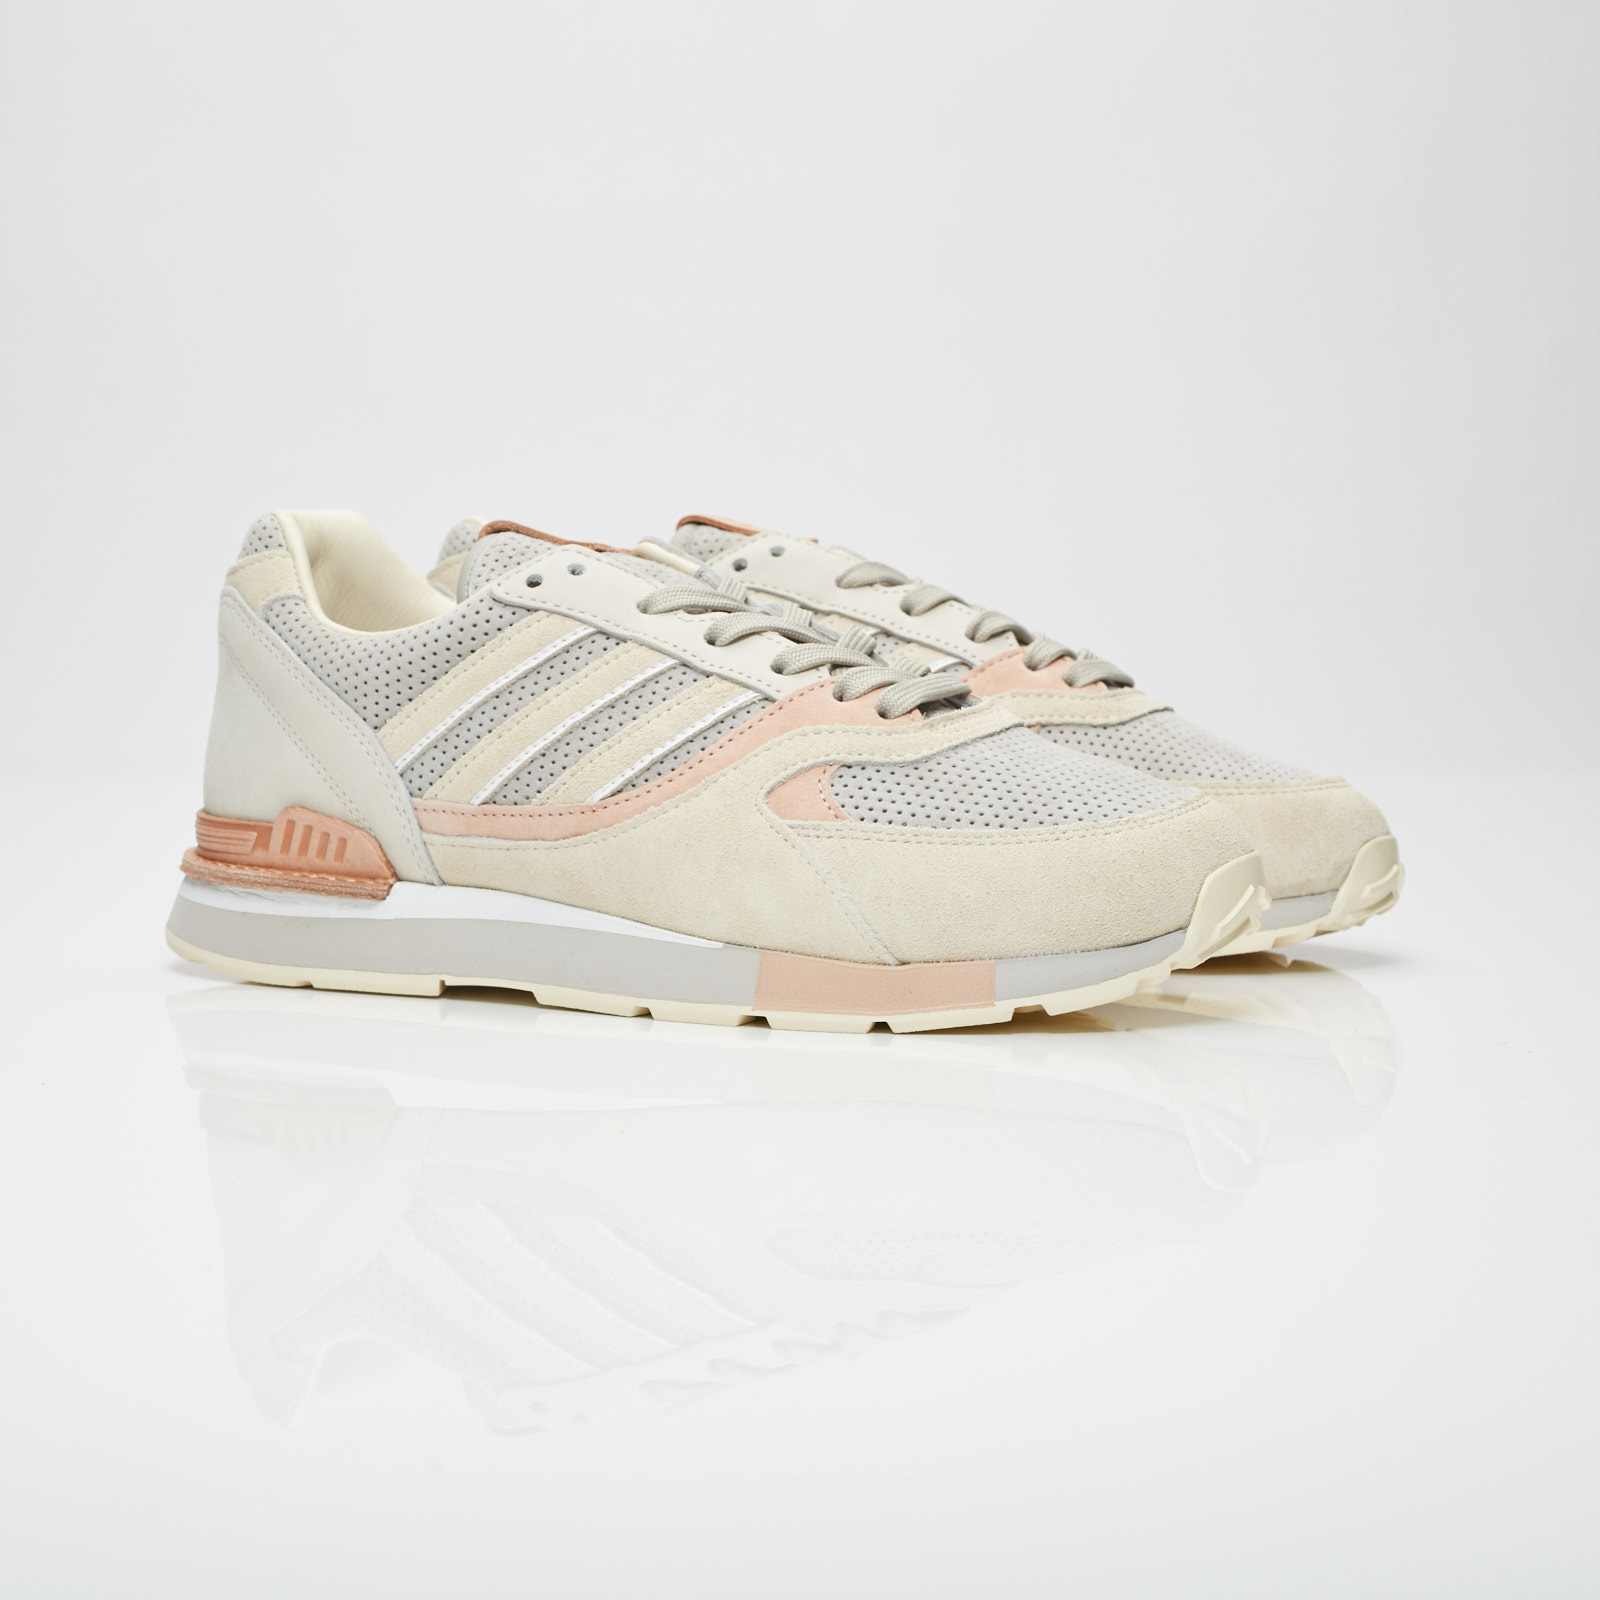 adidas Quesence x Solebox - Db1785 - Sneakersnstuff  e0b09cfa6